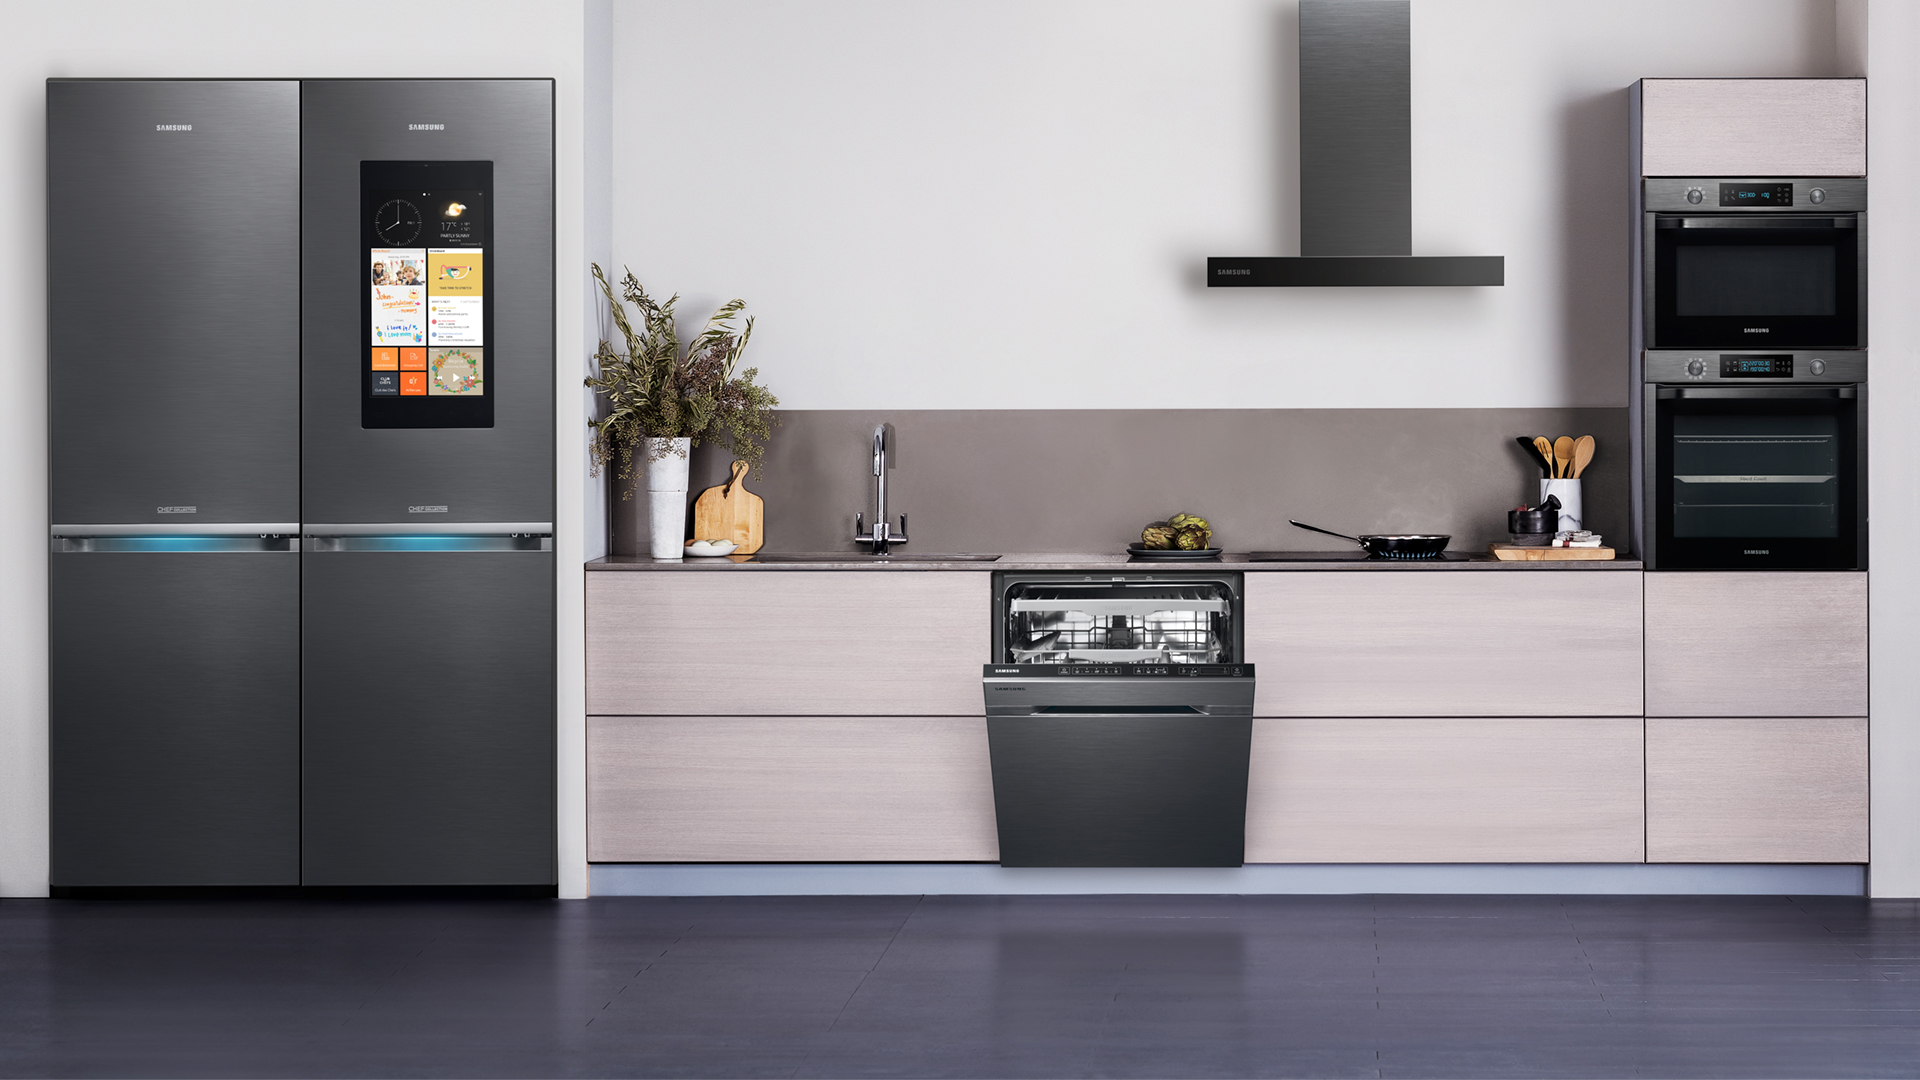 Samsung Unveils Three New Built In Kitchen Appliance Lineups Designed For The Contemporary European Consumer Samsung Newsroom Global Media Library